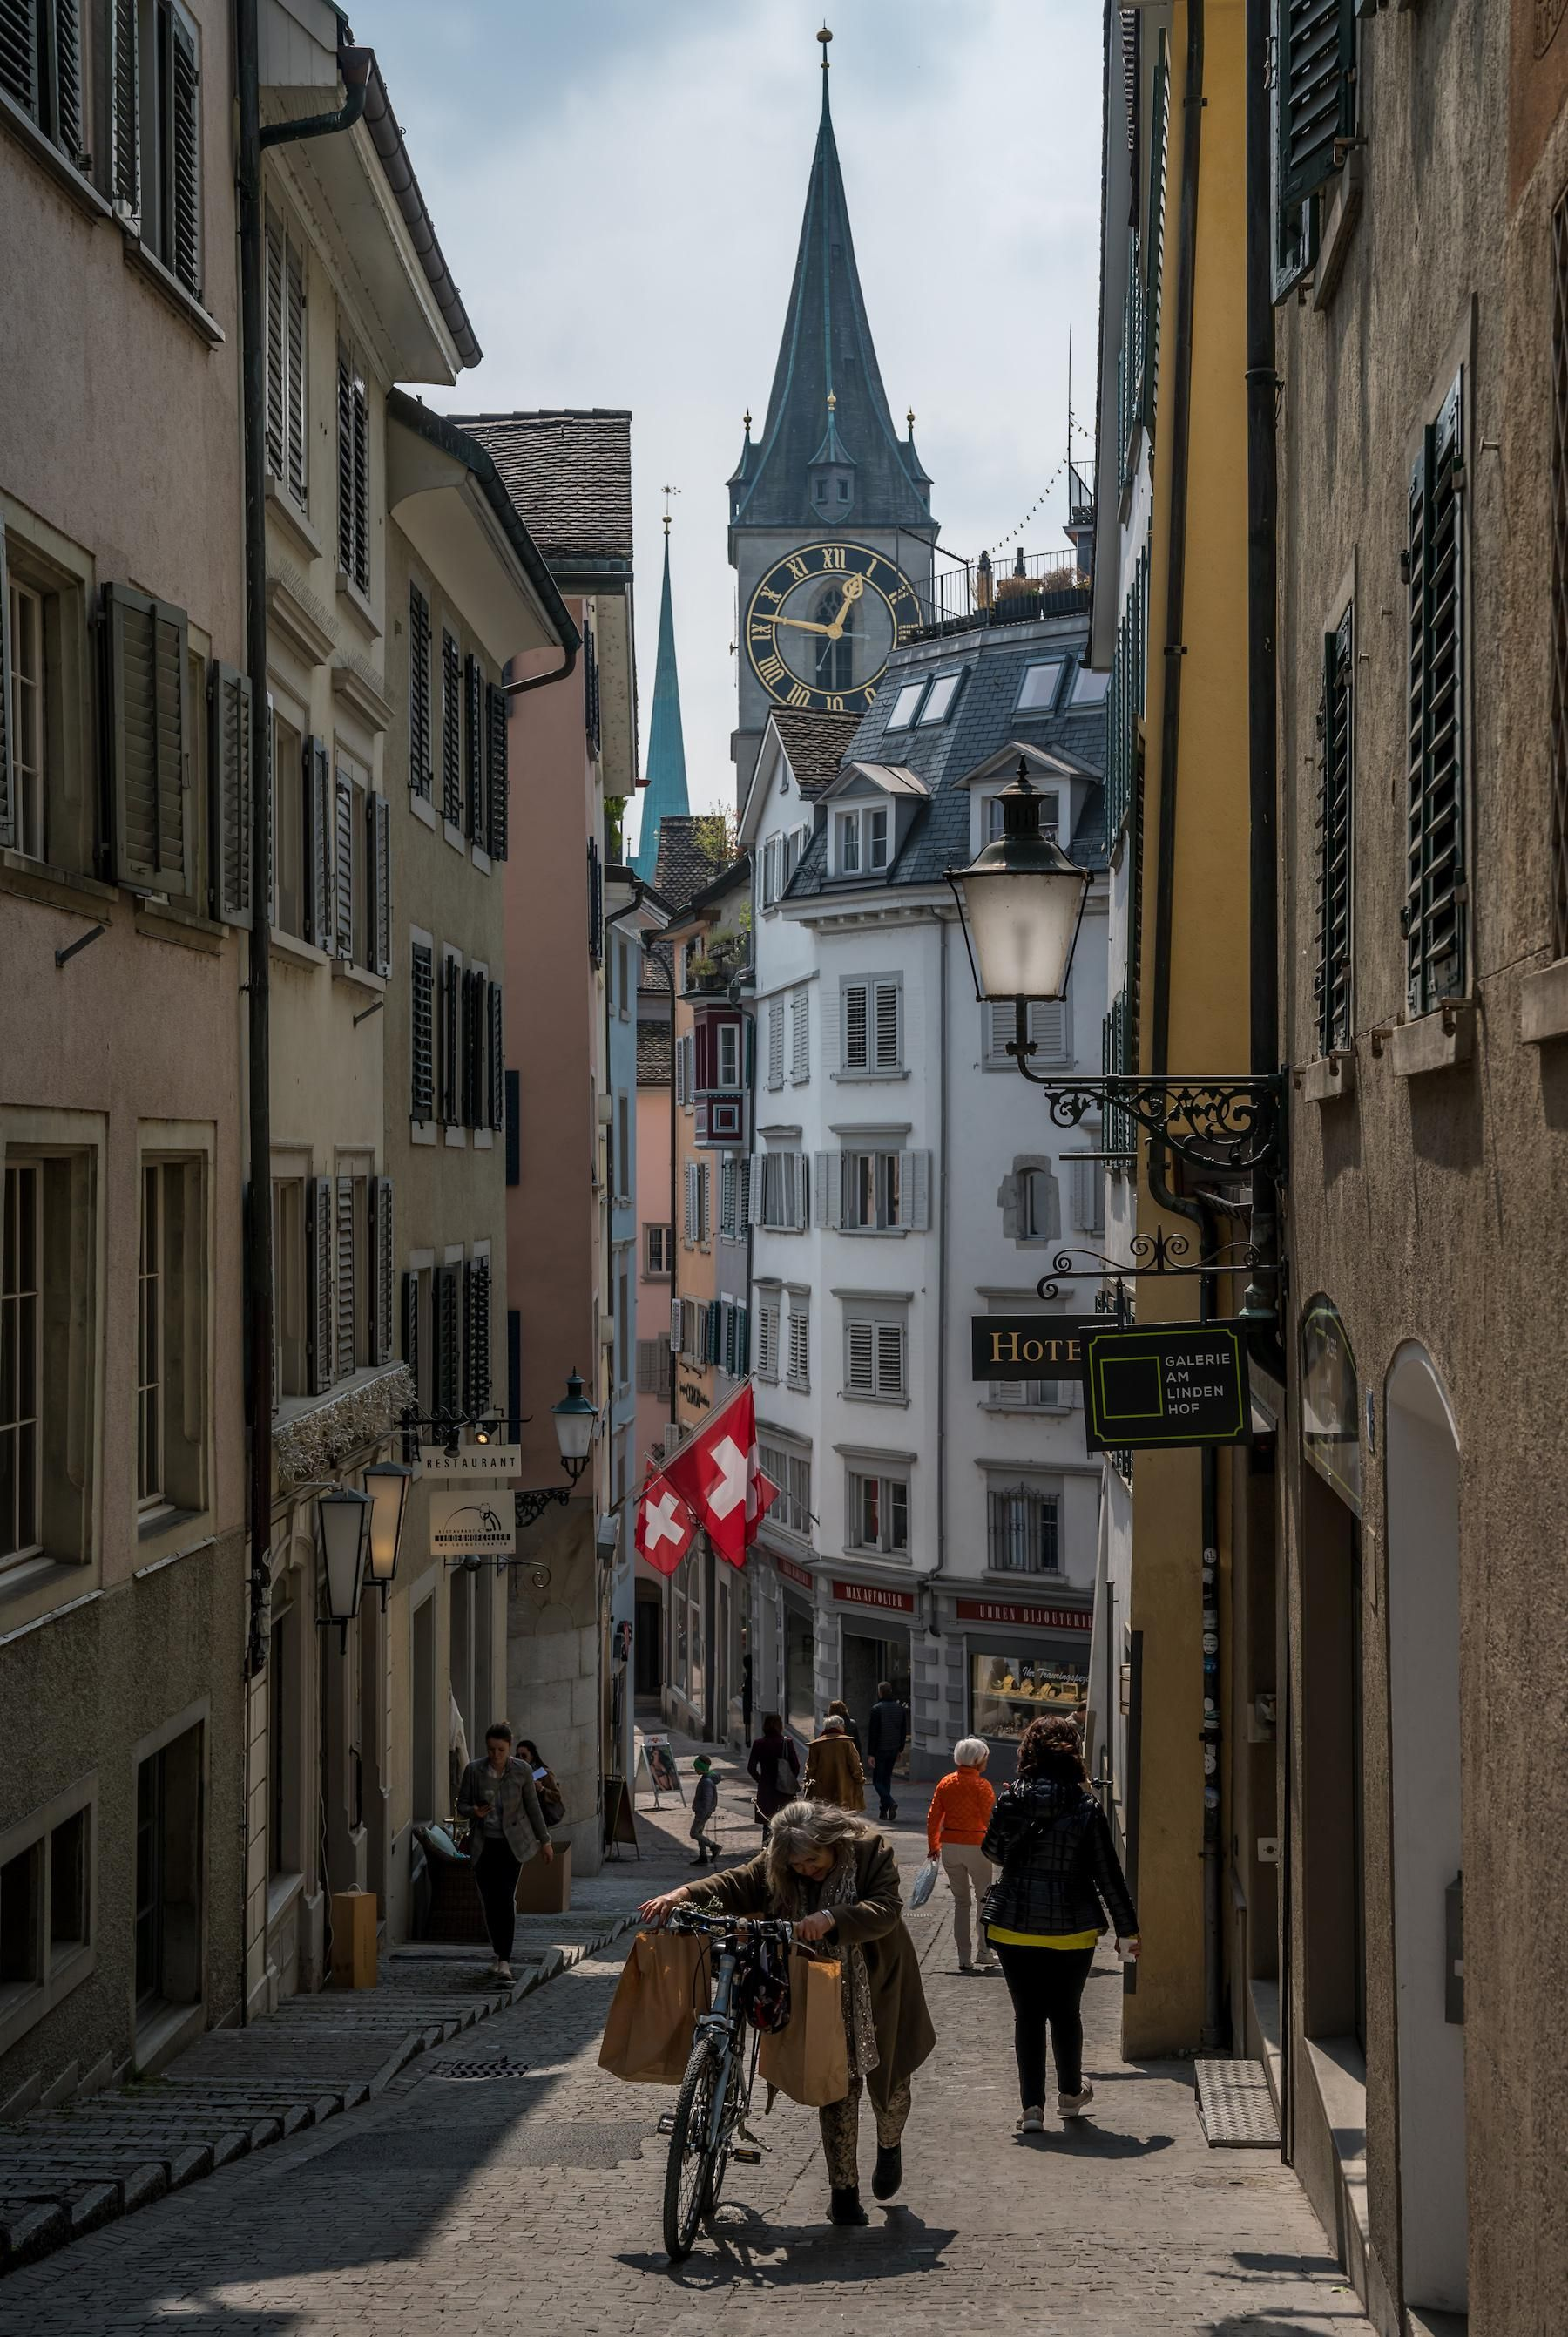 Zurich, Switzerland [OC]